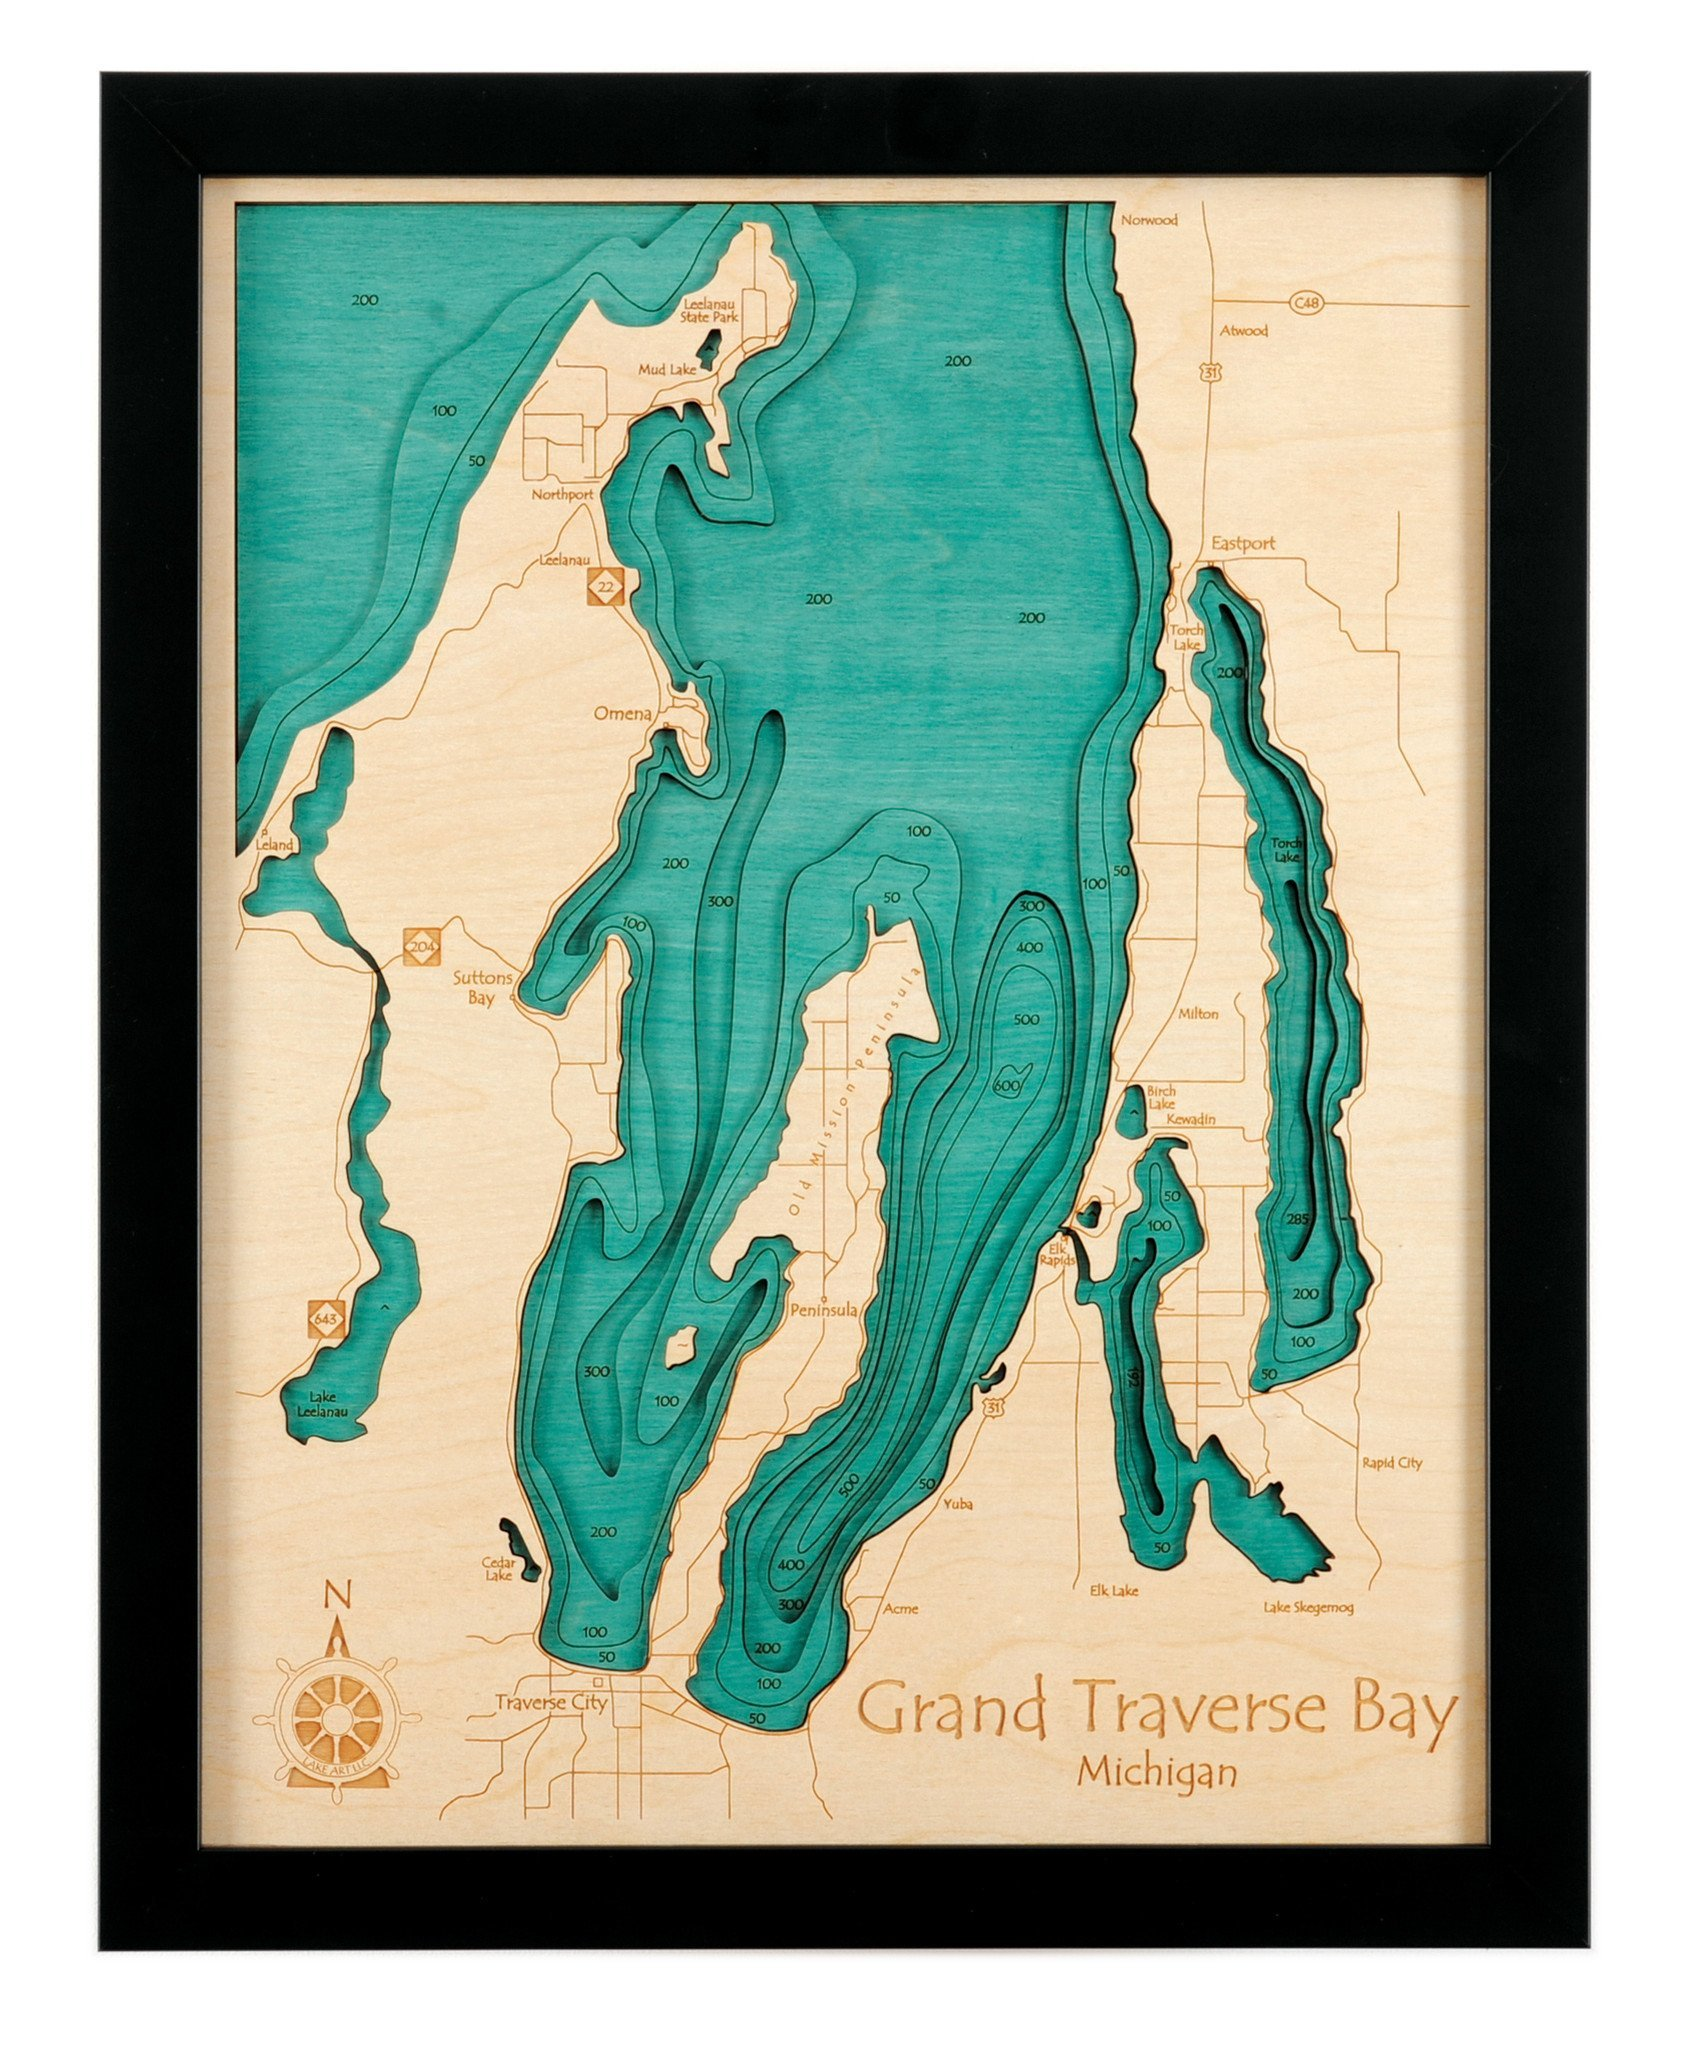 Fulton Chain of Lakes (First, Second, Third and Fourth Lakes) in Herkimer Hamilton, NY - 3D Map (Black Frame/No Glass Front) 14 x 18 IN - Laser carved wood nautical chart and topographic depth map. by Long Lake Lifestyle